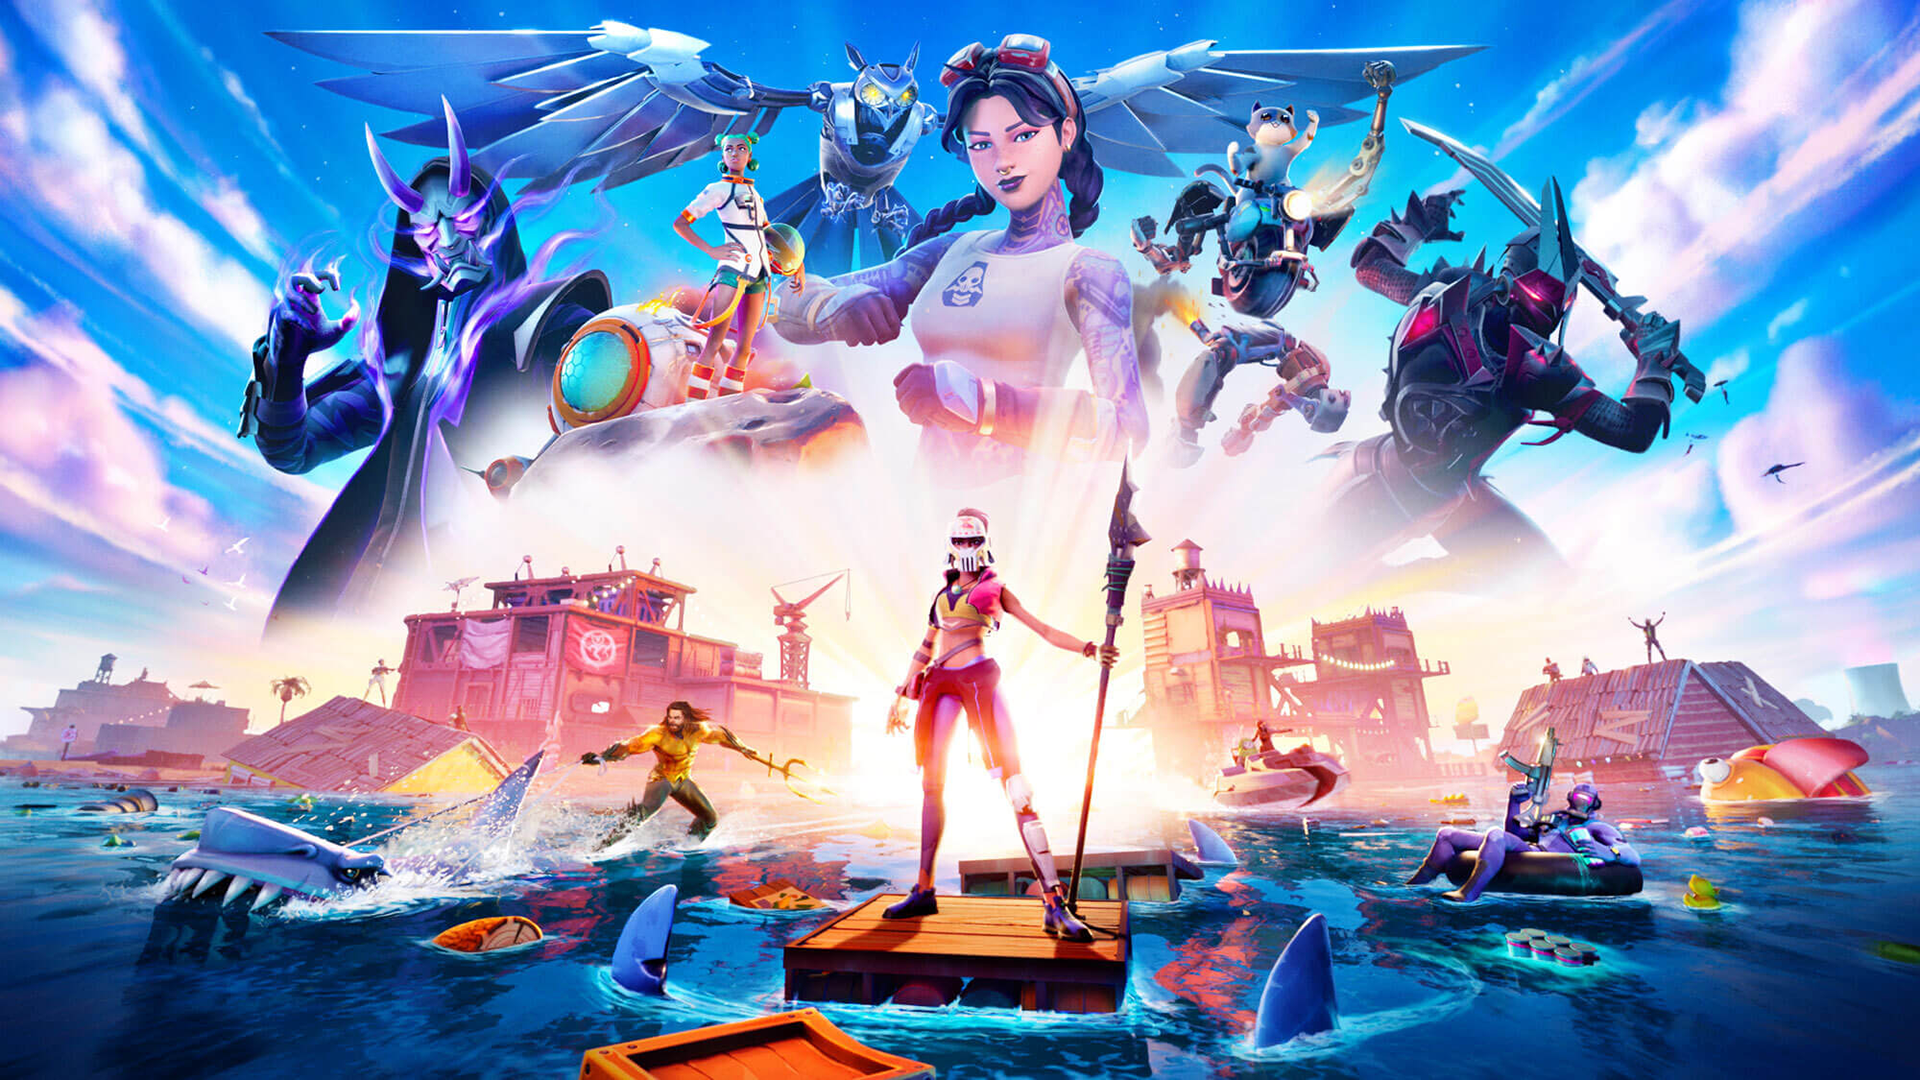 Where To Find The Grappler In Fortnite Chapter 2 Fortnite Map Battle Pass Mythic Weapons Aquaman Skin More To Know About Chapter 2 Season 3 Sporting News